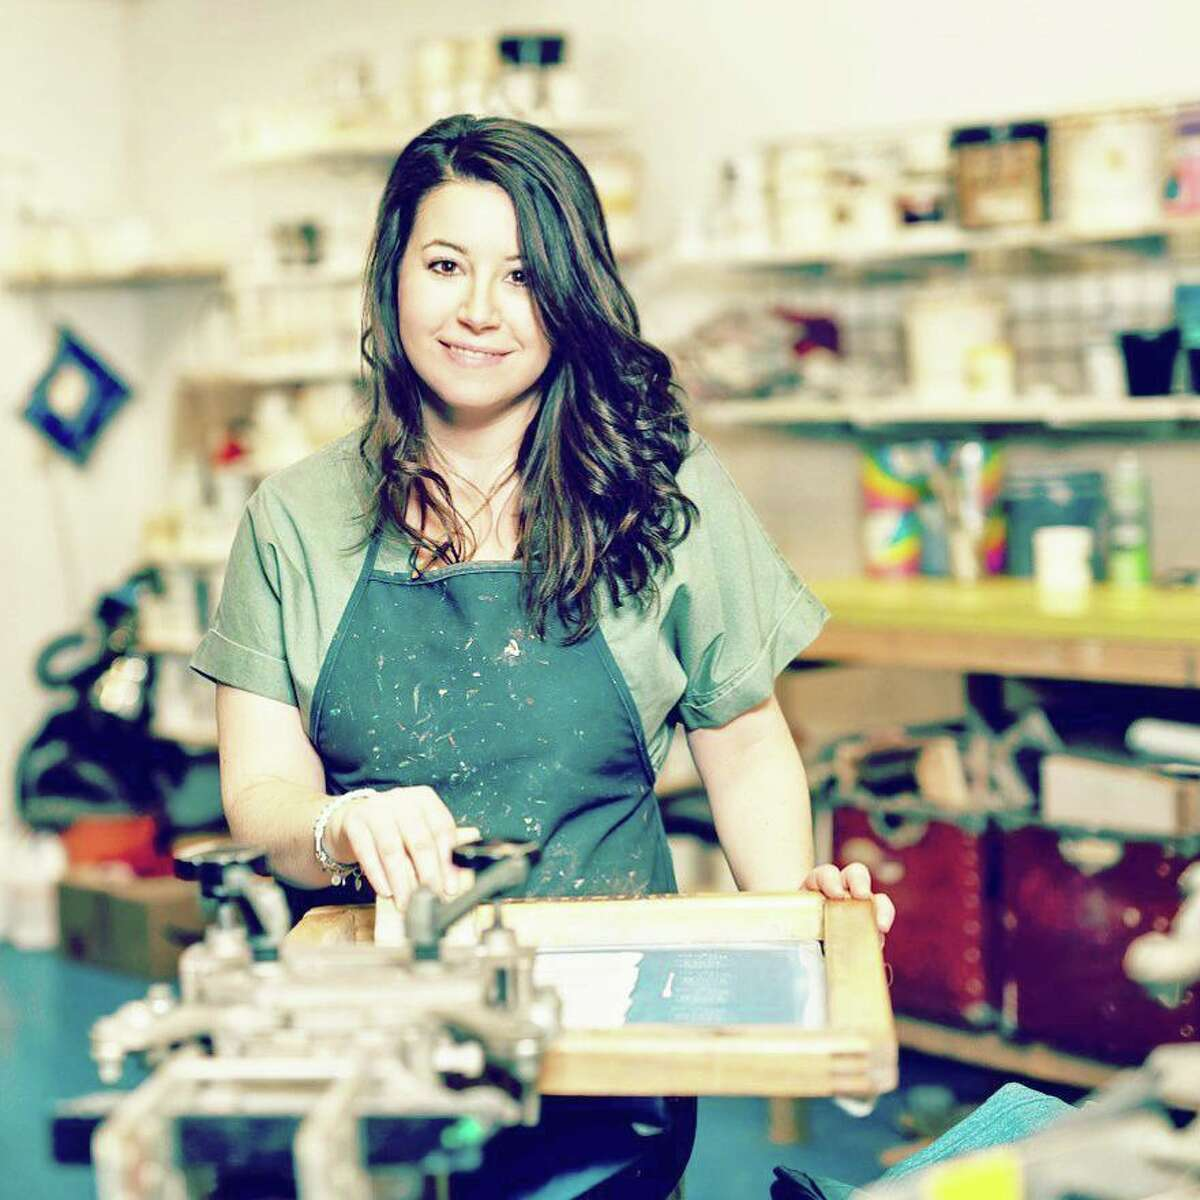 Rachel DeCavage, owner of Cinder + Salt at 520 Main St. in Middletown, is offering weekend sidewalk sales and private shopping experiences for customers. She elected to limit in-person sales rather than reopen May 20 when the state lifted some restrictions on businesses during the coronavirus pandemic.